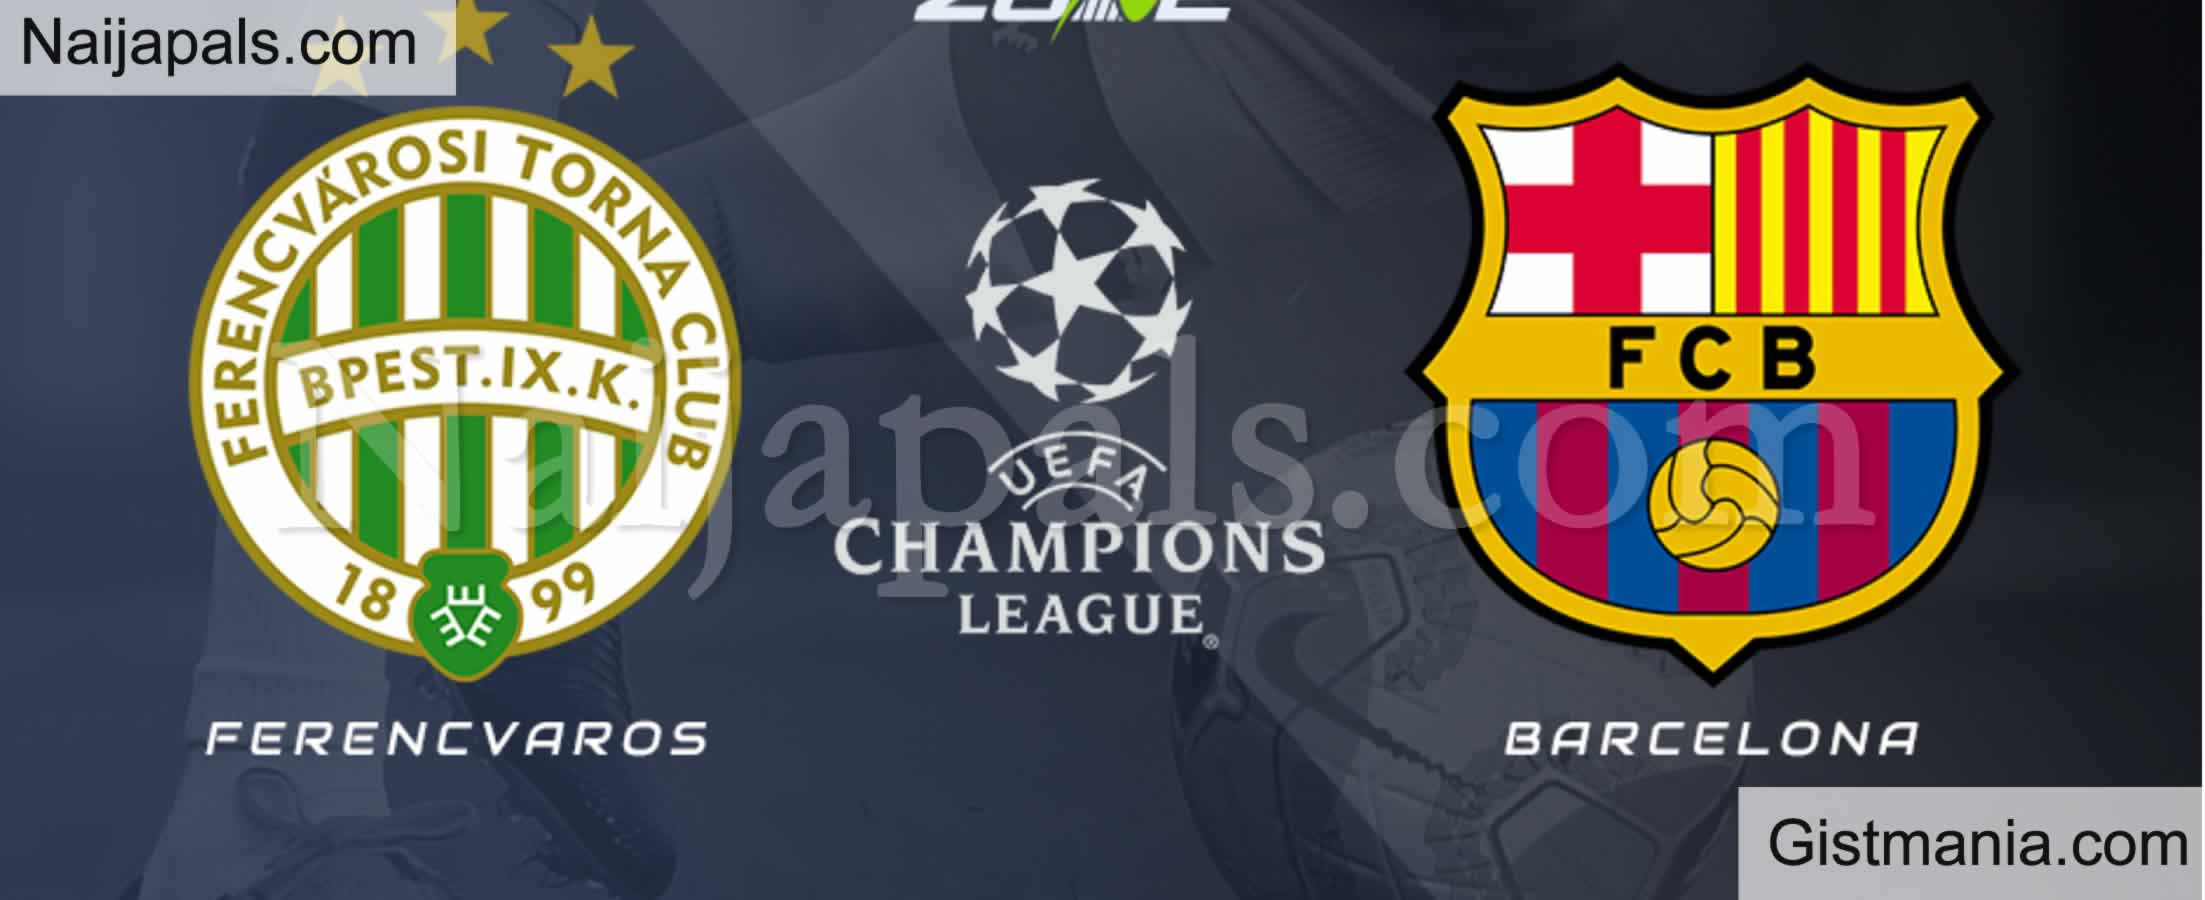 <img alt='.' class='lazyload' data-src='https://img.gistmania.com/emot/soccer.gif' /> <b>Ferencvaros v Barcelona : UEFA Champions League Match, Team News, Goal Scorers and Stats</b>